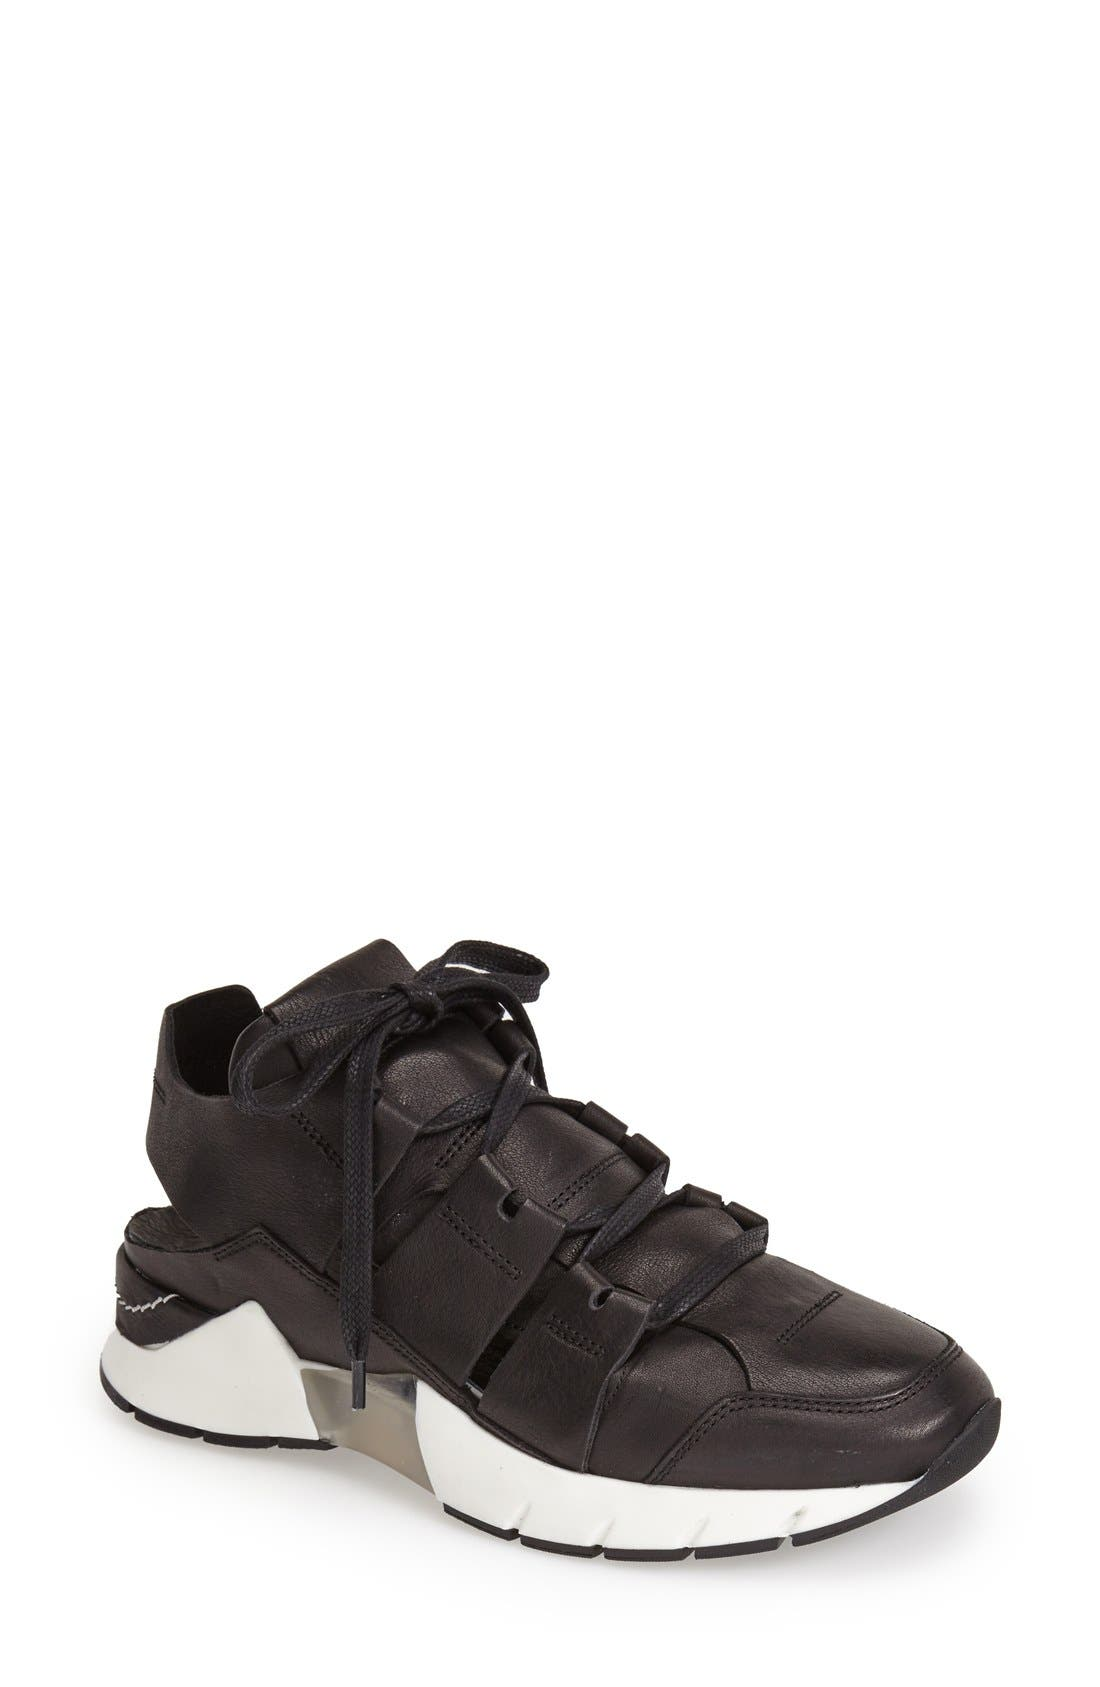 Alternate Image 1 Selected - CA by CINZIA ARAIA Cutout Leather Sneaker (Women)